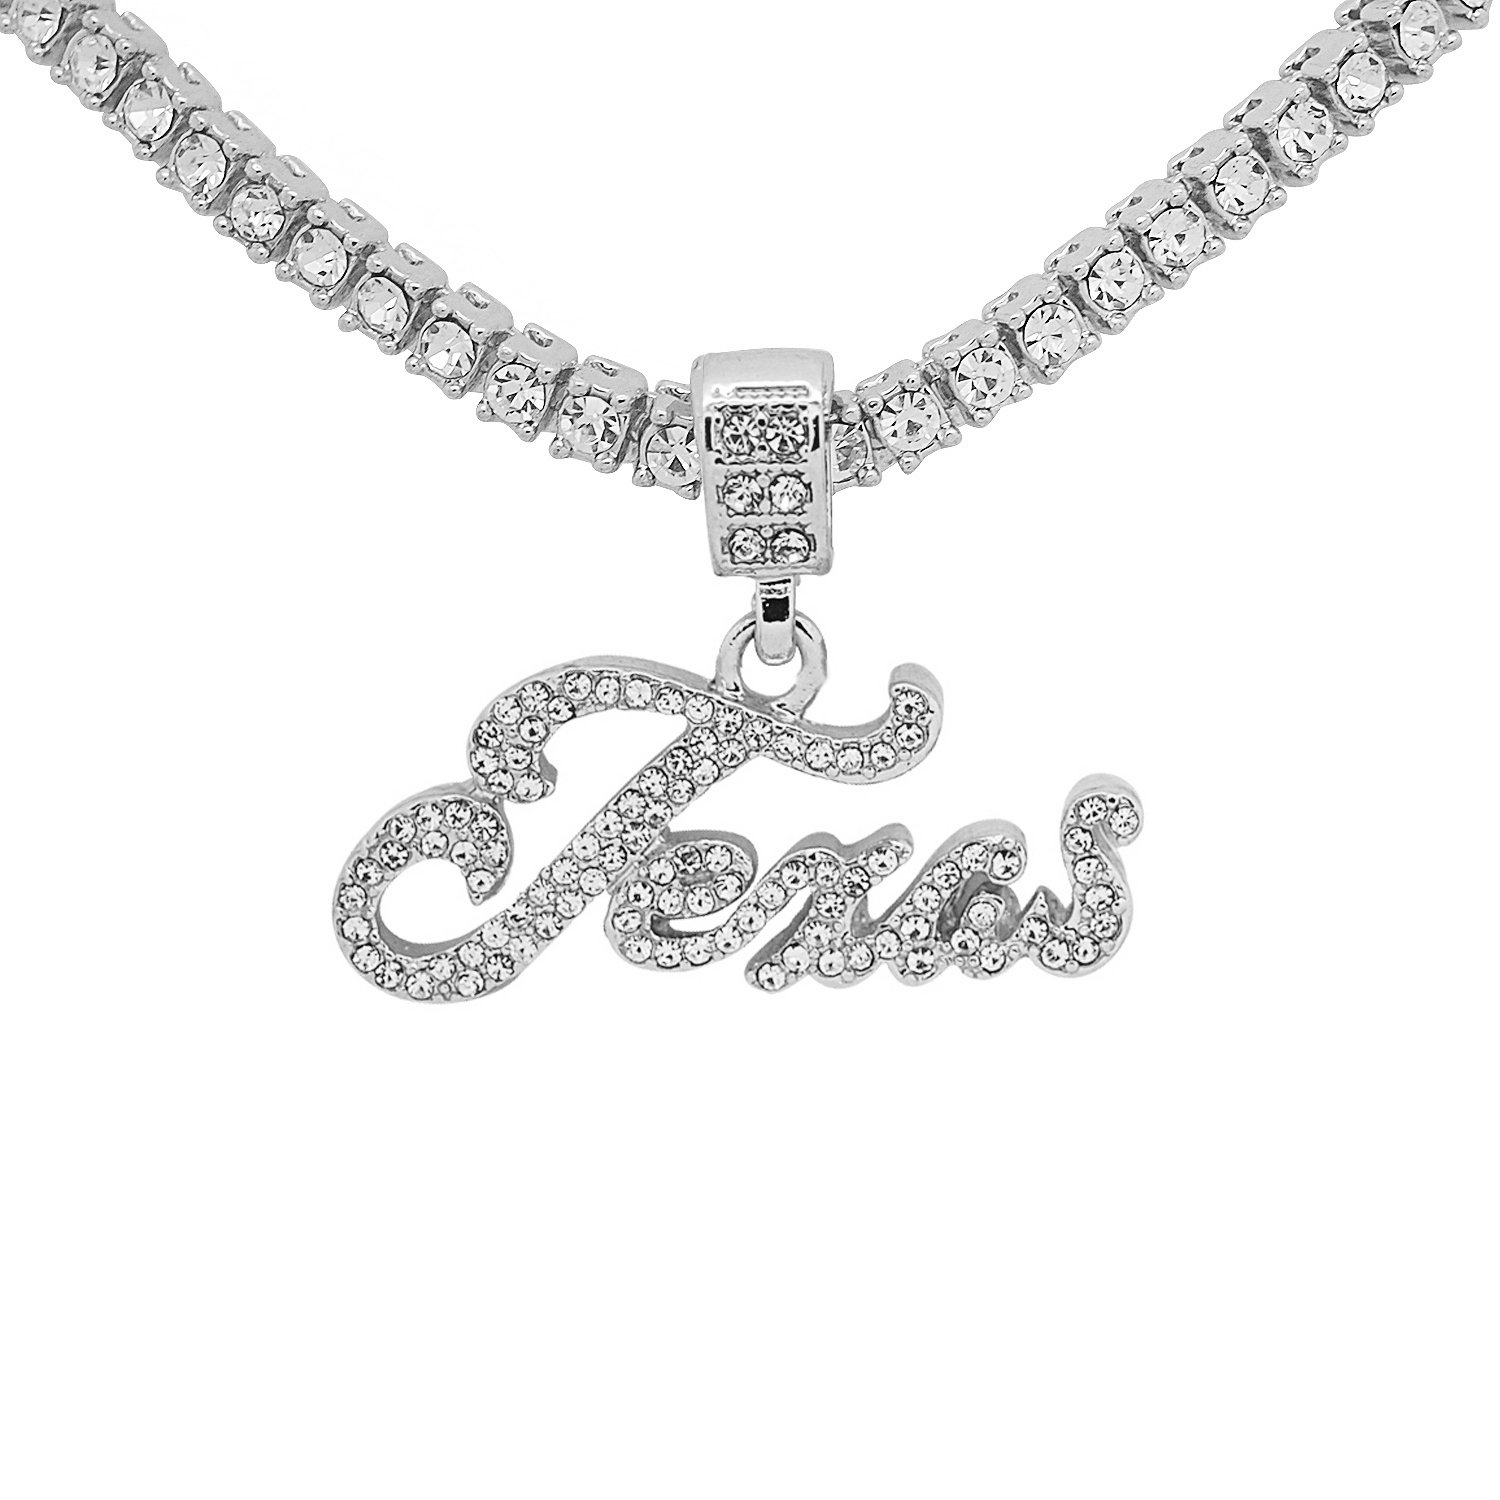 White Gold-Tone Hip Hop Bling CursiveTexas Letter Pendant with 20 Tennis Chain and 24 Rope Chain